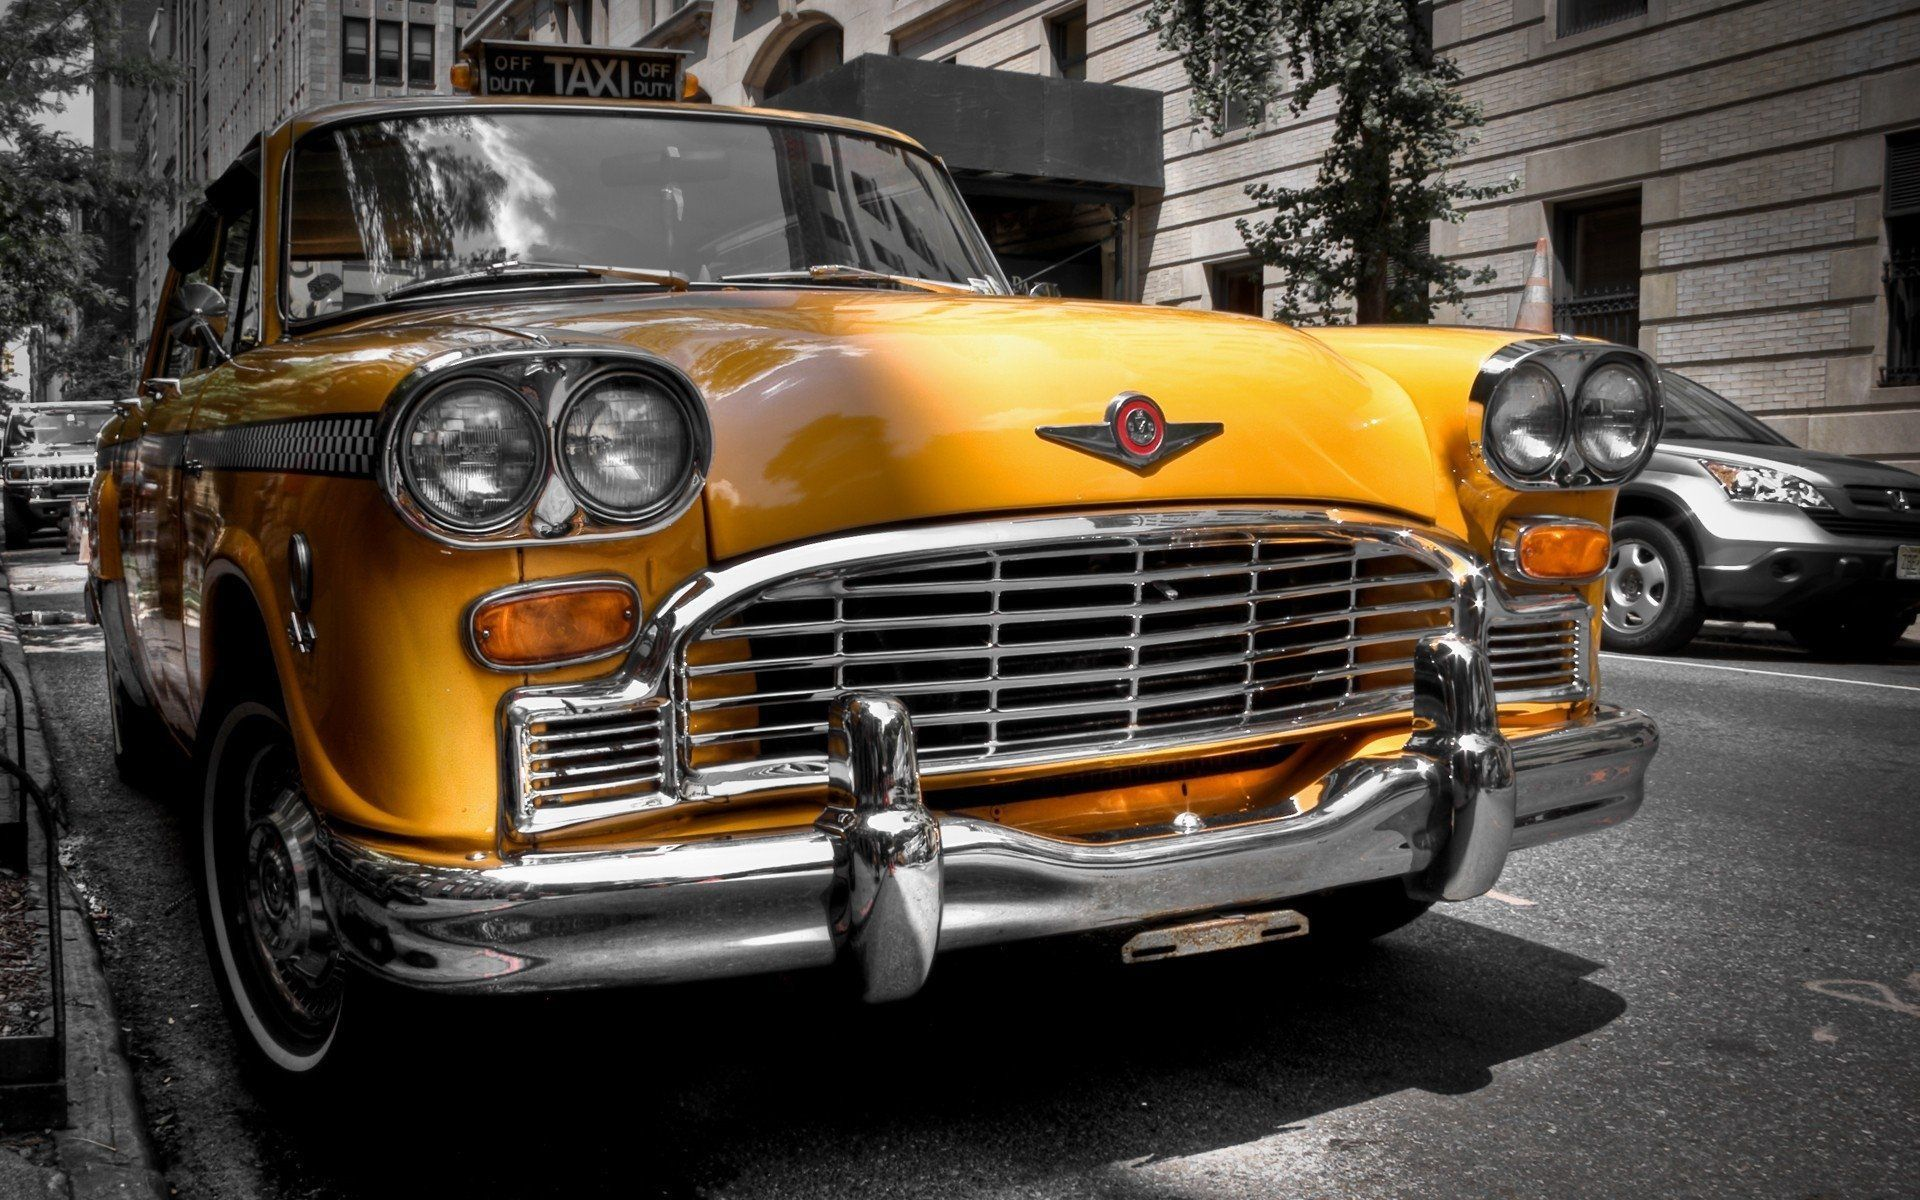 Vintage Car Hd Wallpapers Wallpaper Cave 1920x1080 best hd wallpapers of cars, full hd, hdtv, fhd, 1080p desktop backgrounds for pc & mac, laptop, tablet, mobile phone. vintage car hd wallpapers wallpaper cave